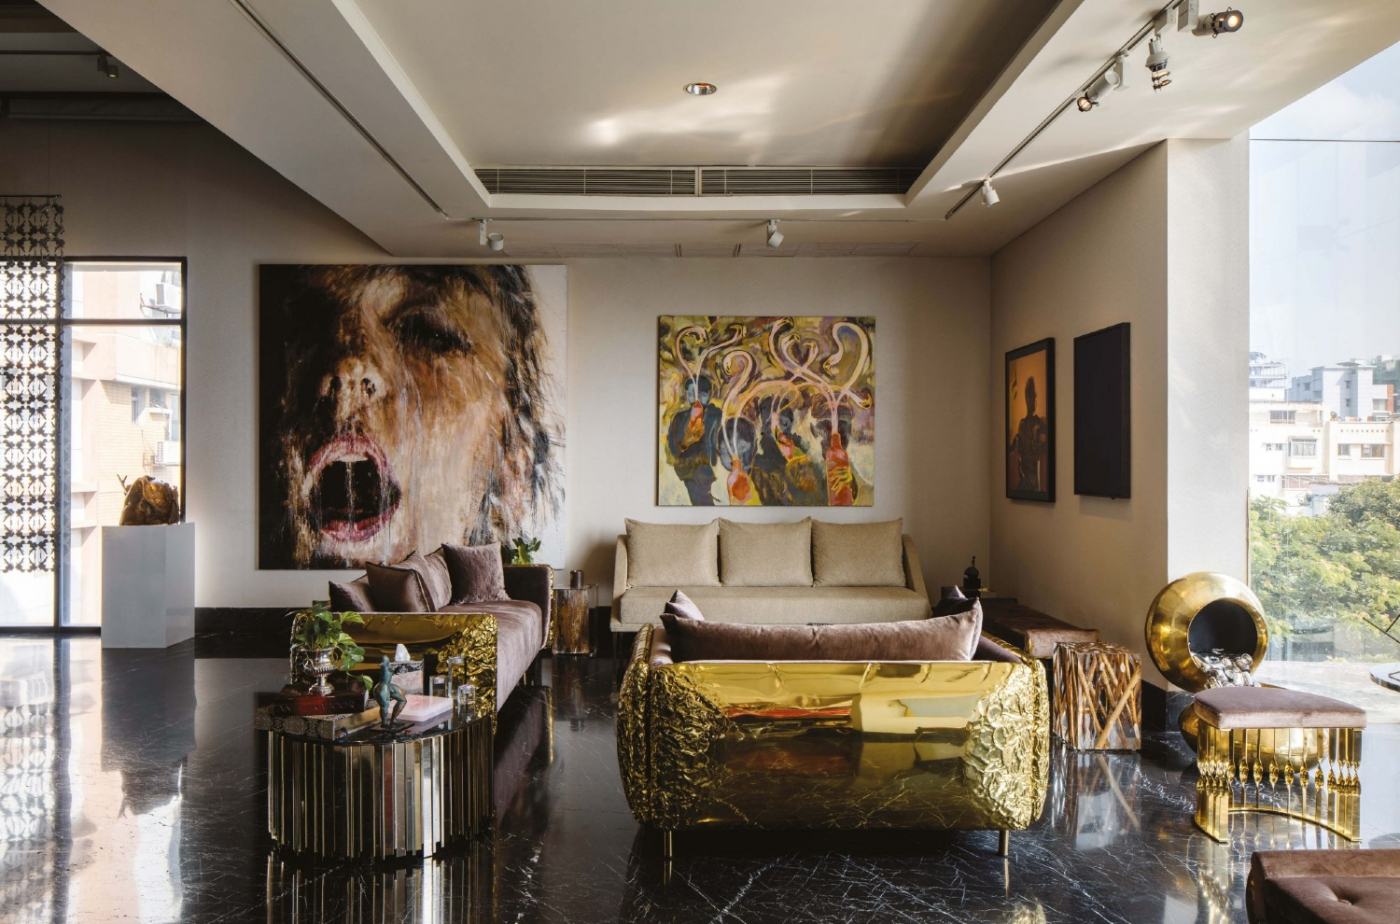 luxury residence A Luxury Residence Idealized For A Mega Art-Collecting Couple feature image 2020 10 06T182602